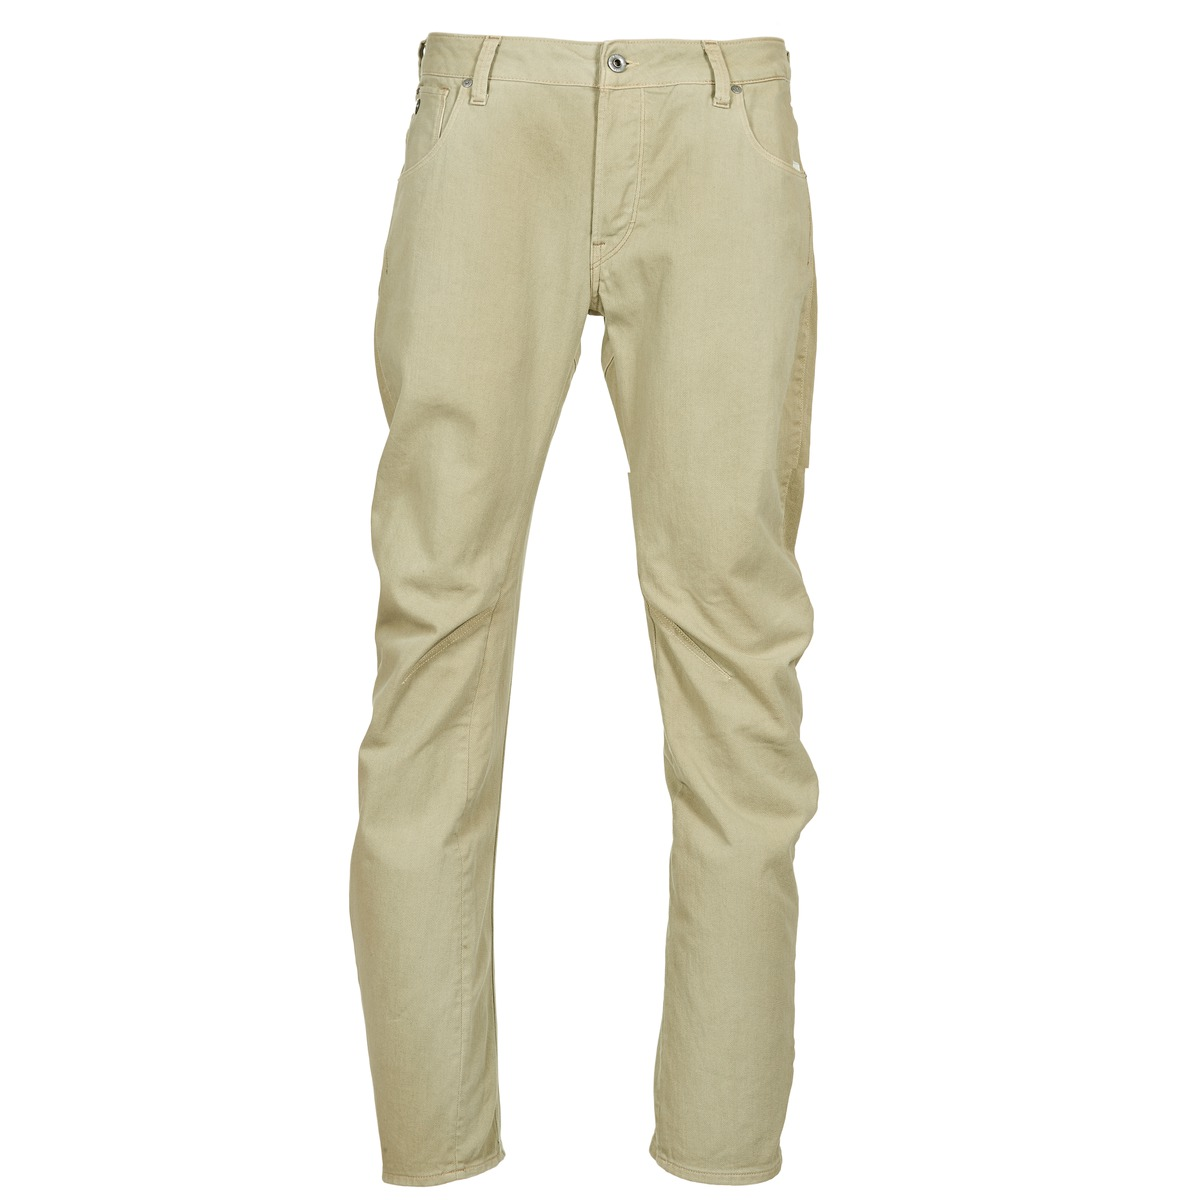 G-Star Raw ARC 3D SLIM Beige